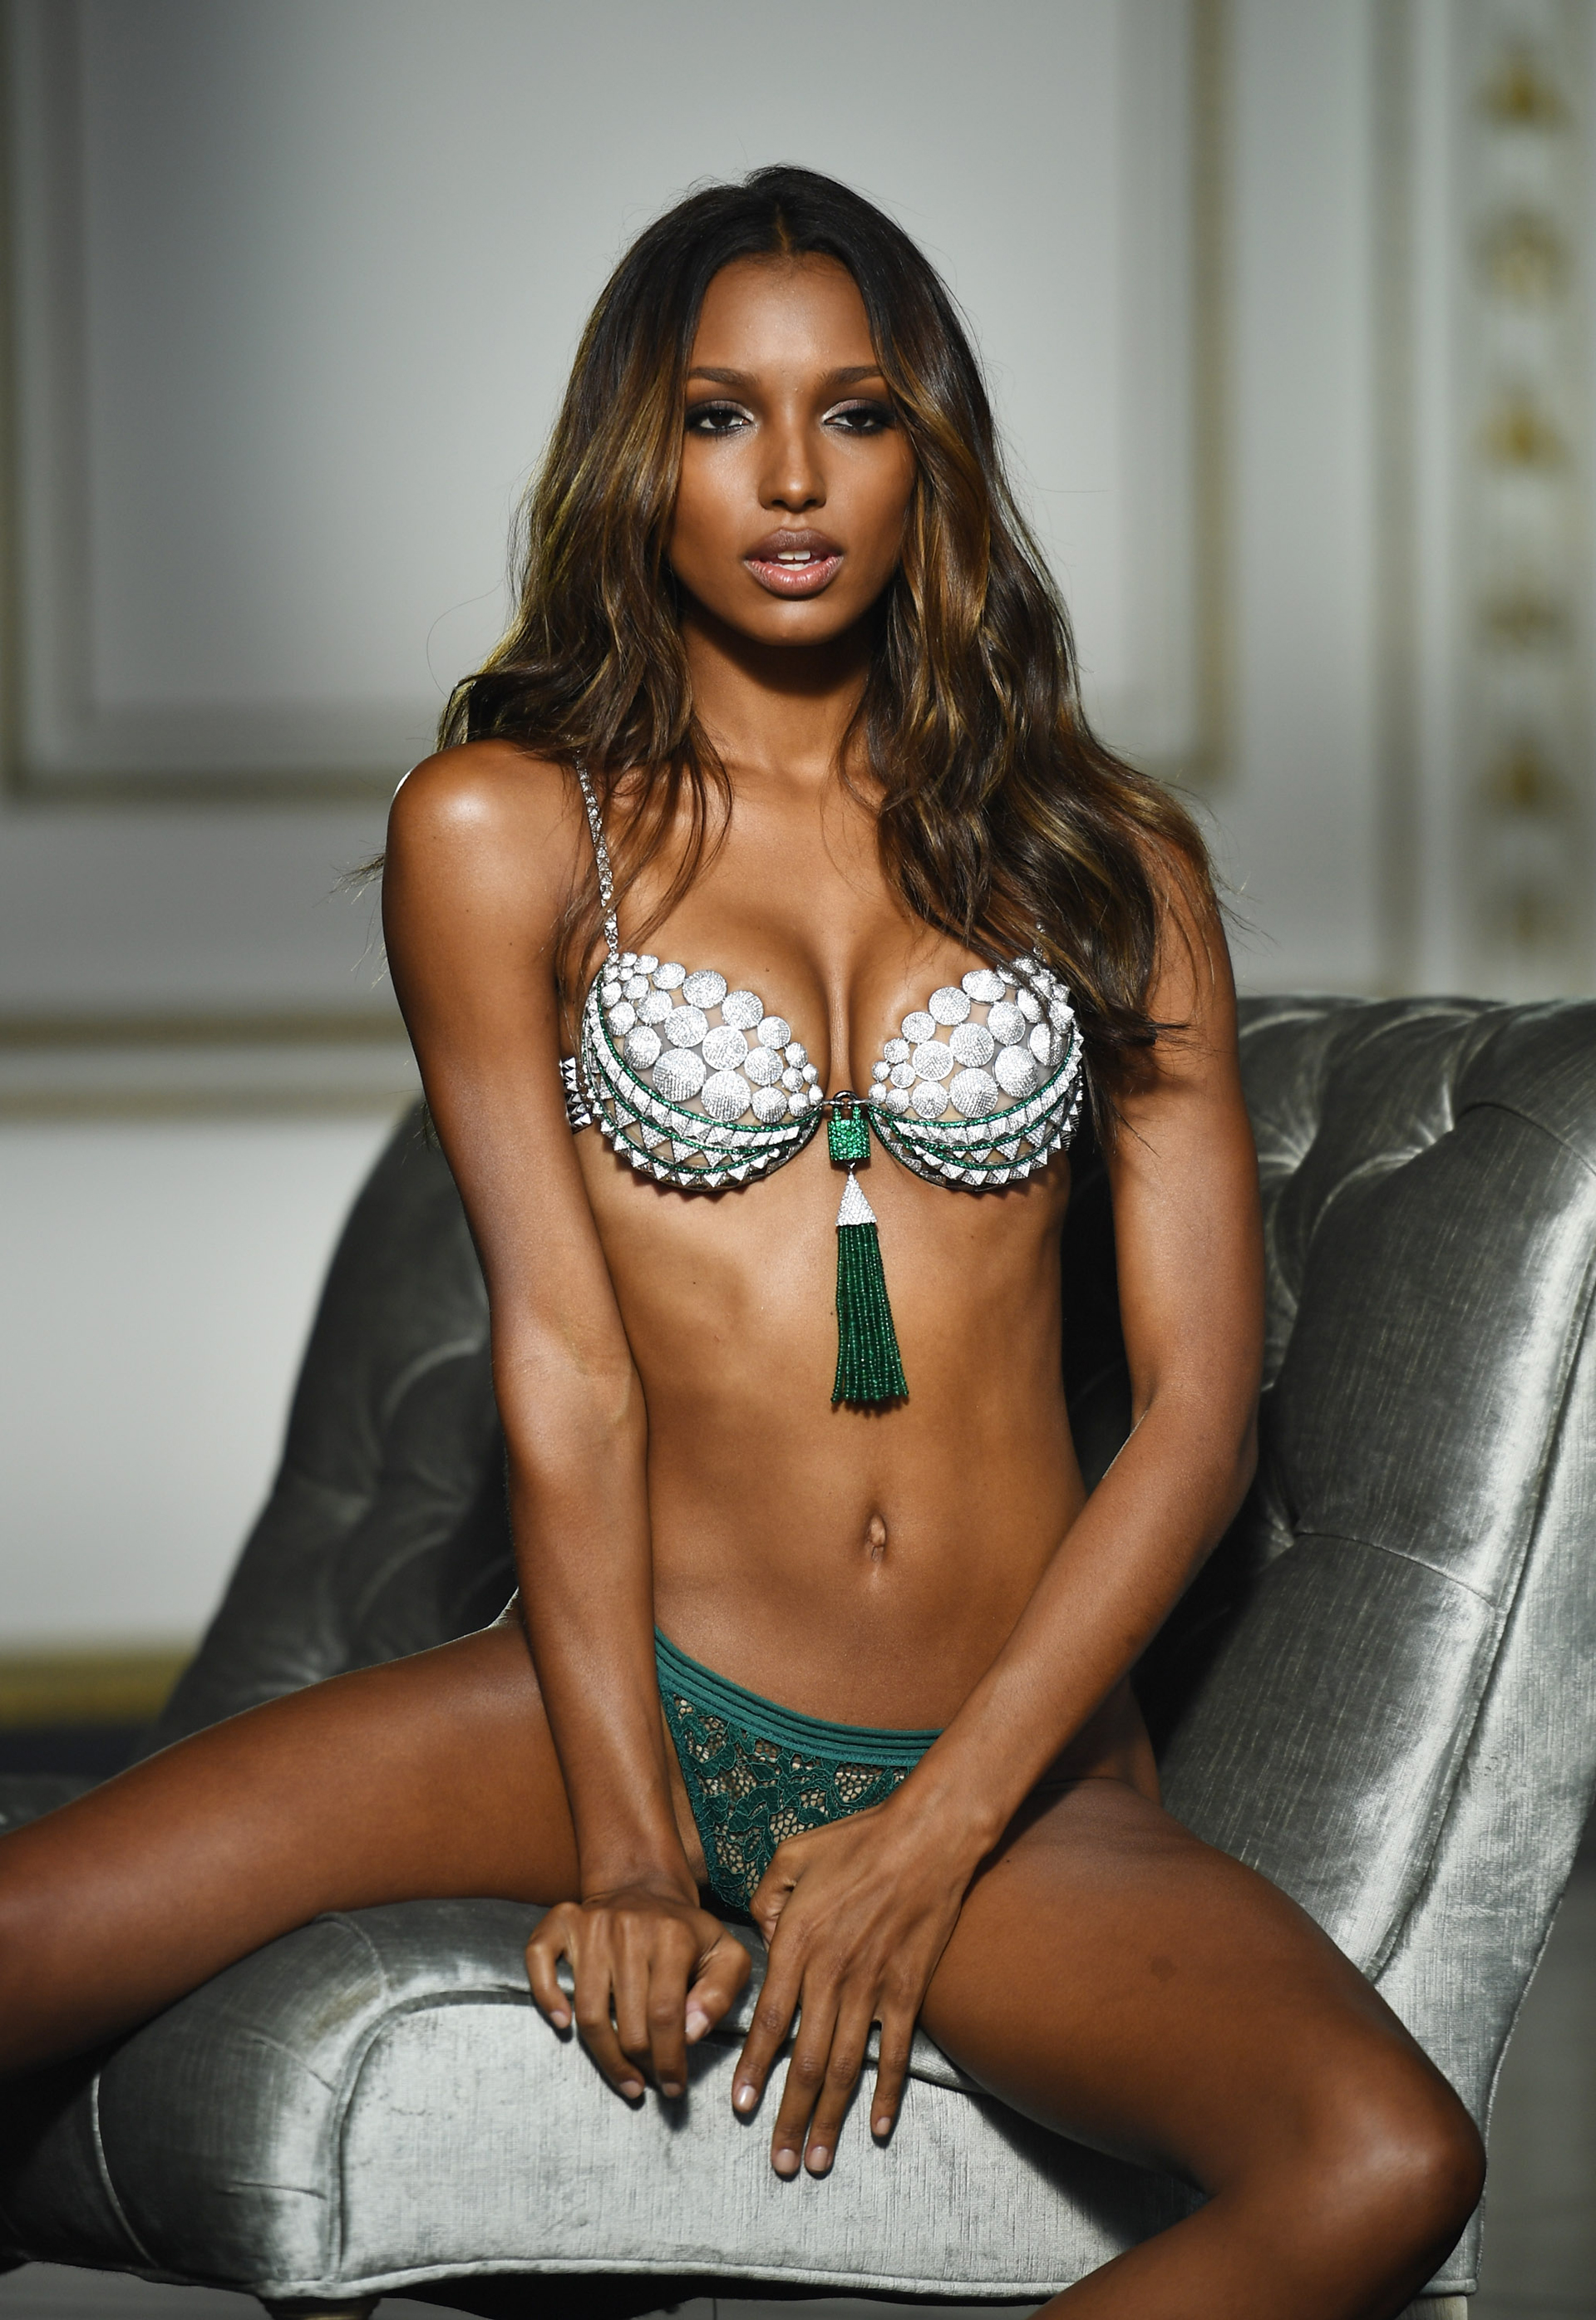 2016: Jasmine Tookes was commissioned to wear the 'Bright Night' in the latest edition of the Victoria's Secret Fashion Show composed of 9,000 precious stones, diamonds in 18 carat gold with more than 700 hours of work.  Its value: USD 3,000,000